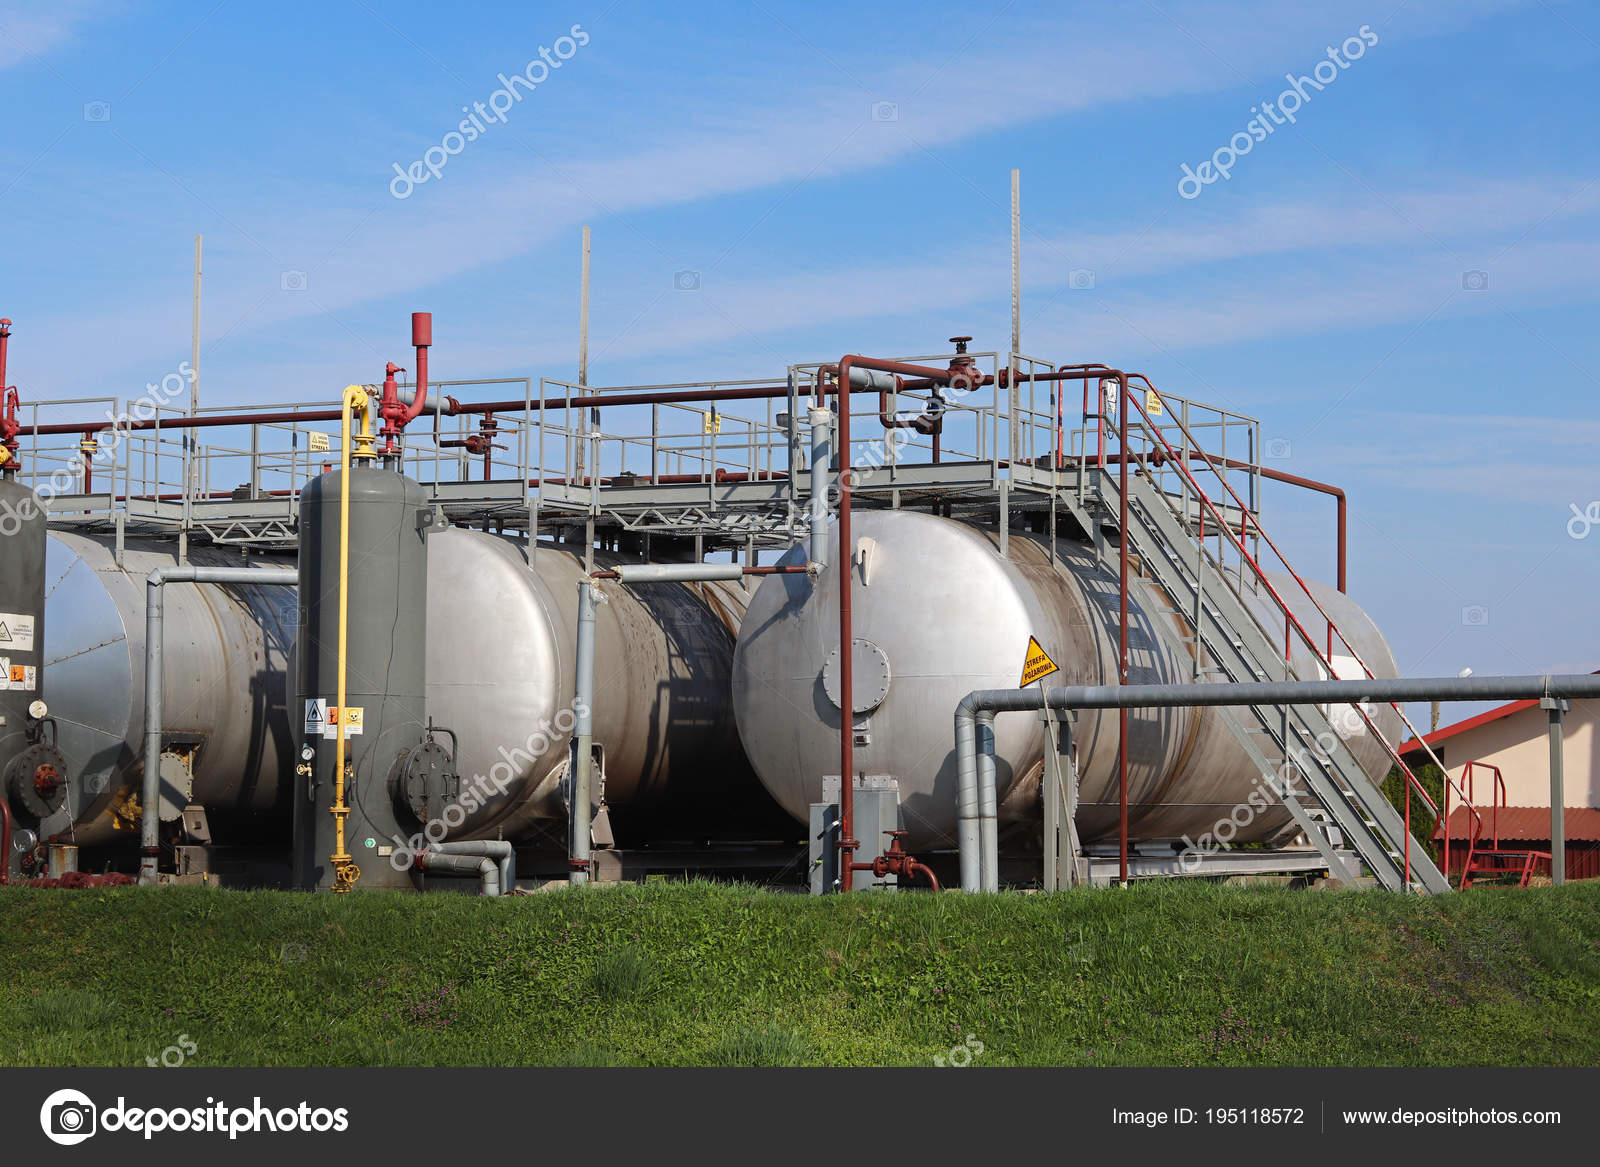 Tanks - elements of oil pump station. Tansport and distribution of oil.  Technology of oil transportation system. Training manual for oil refining.